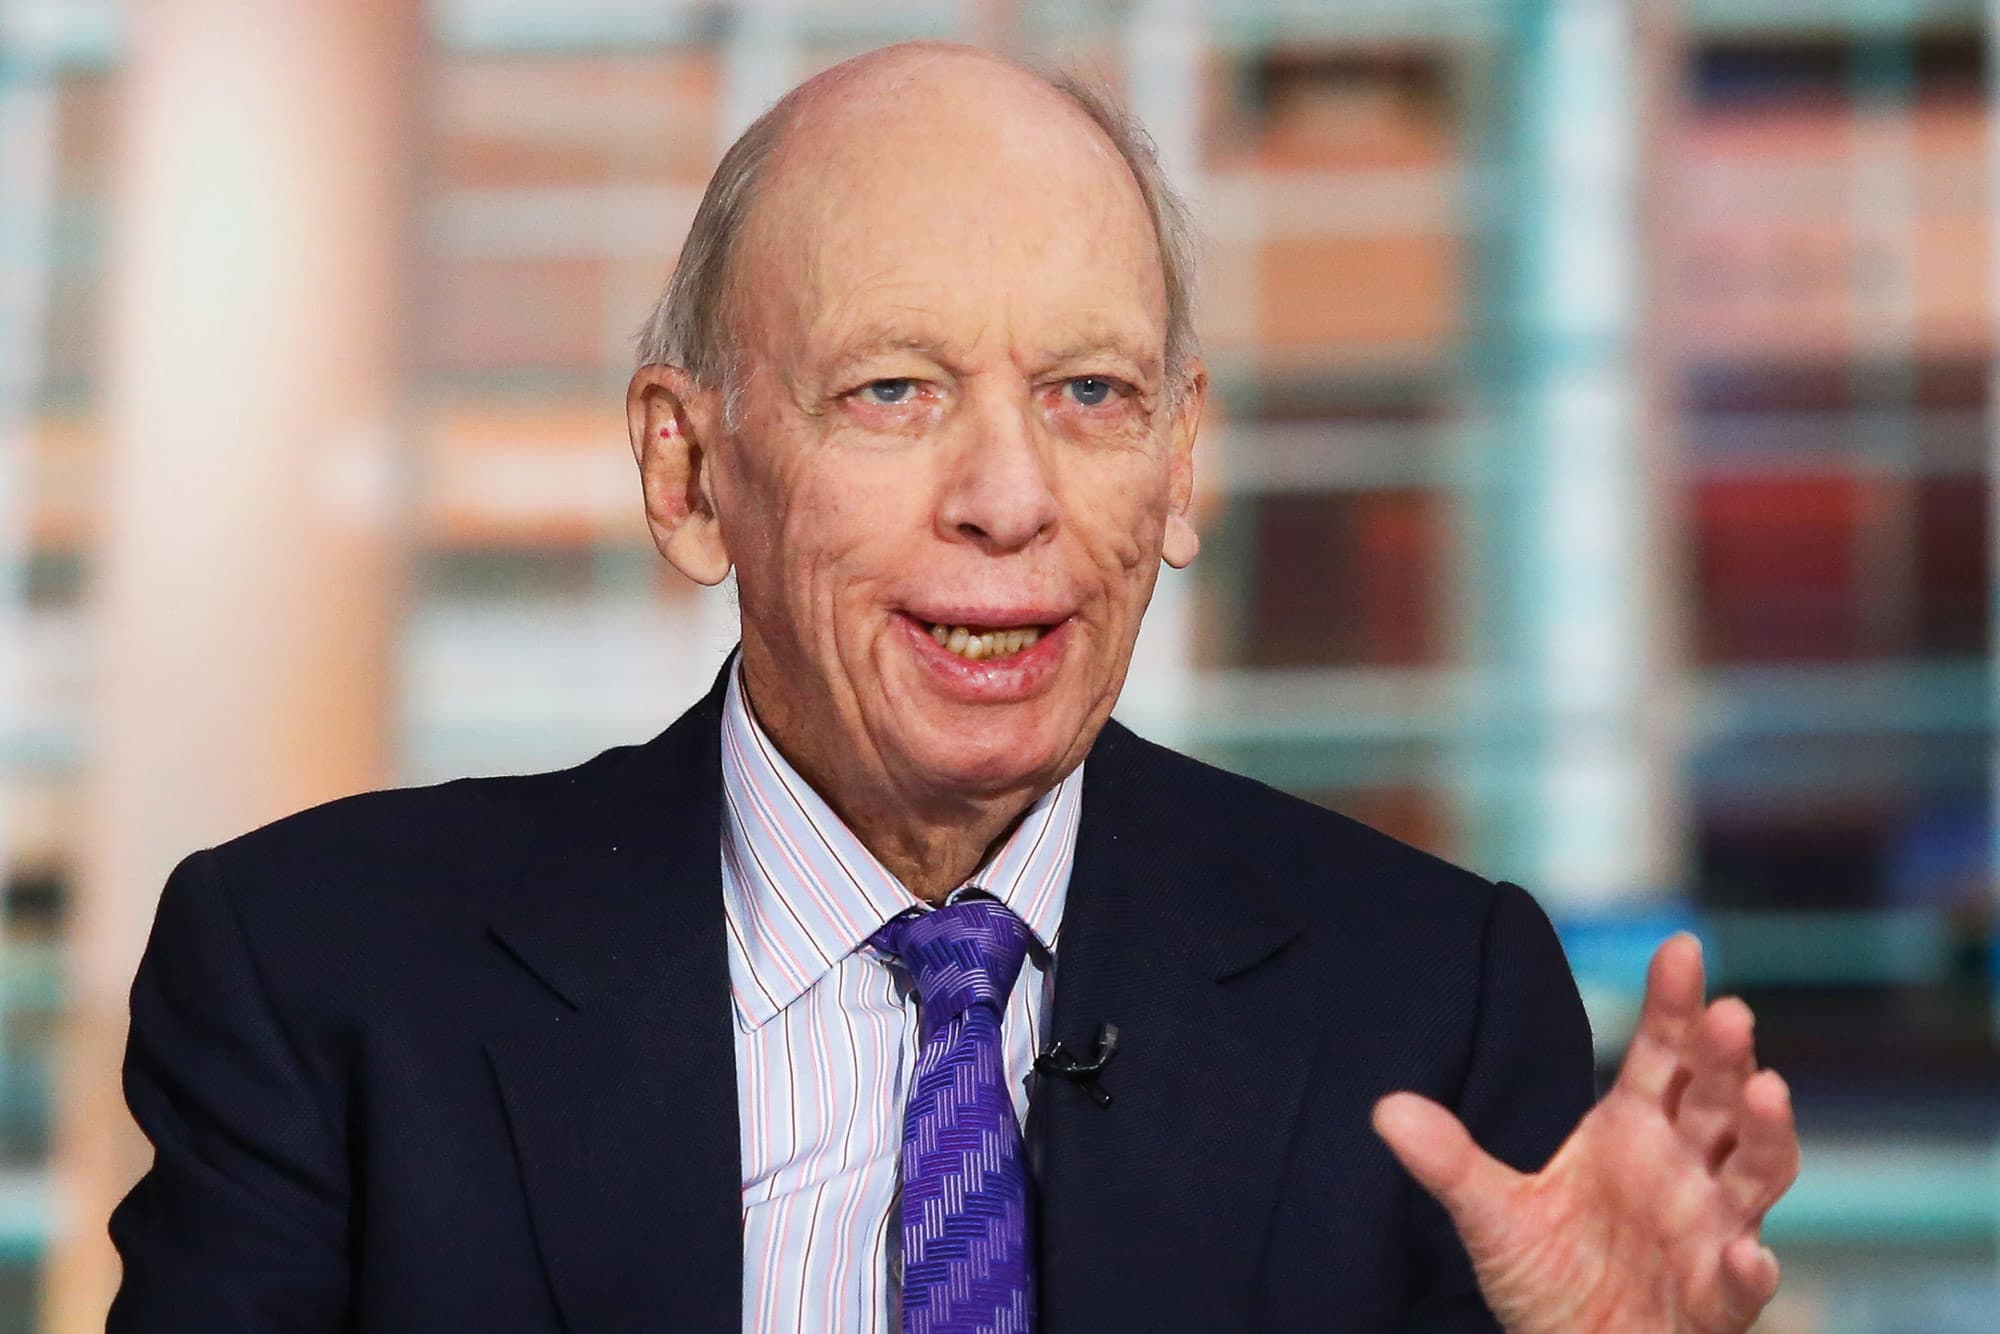 Blackstone's Byron Wien to the Fed: The stock market and economy don't need a rate cut to thrive